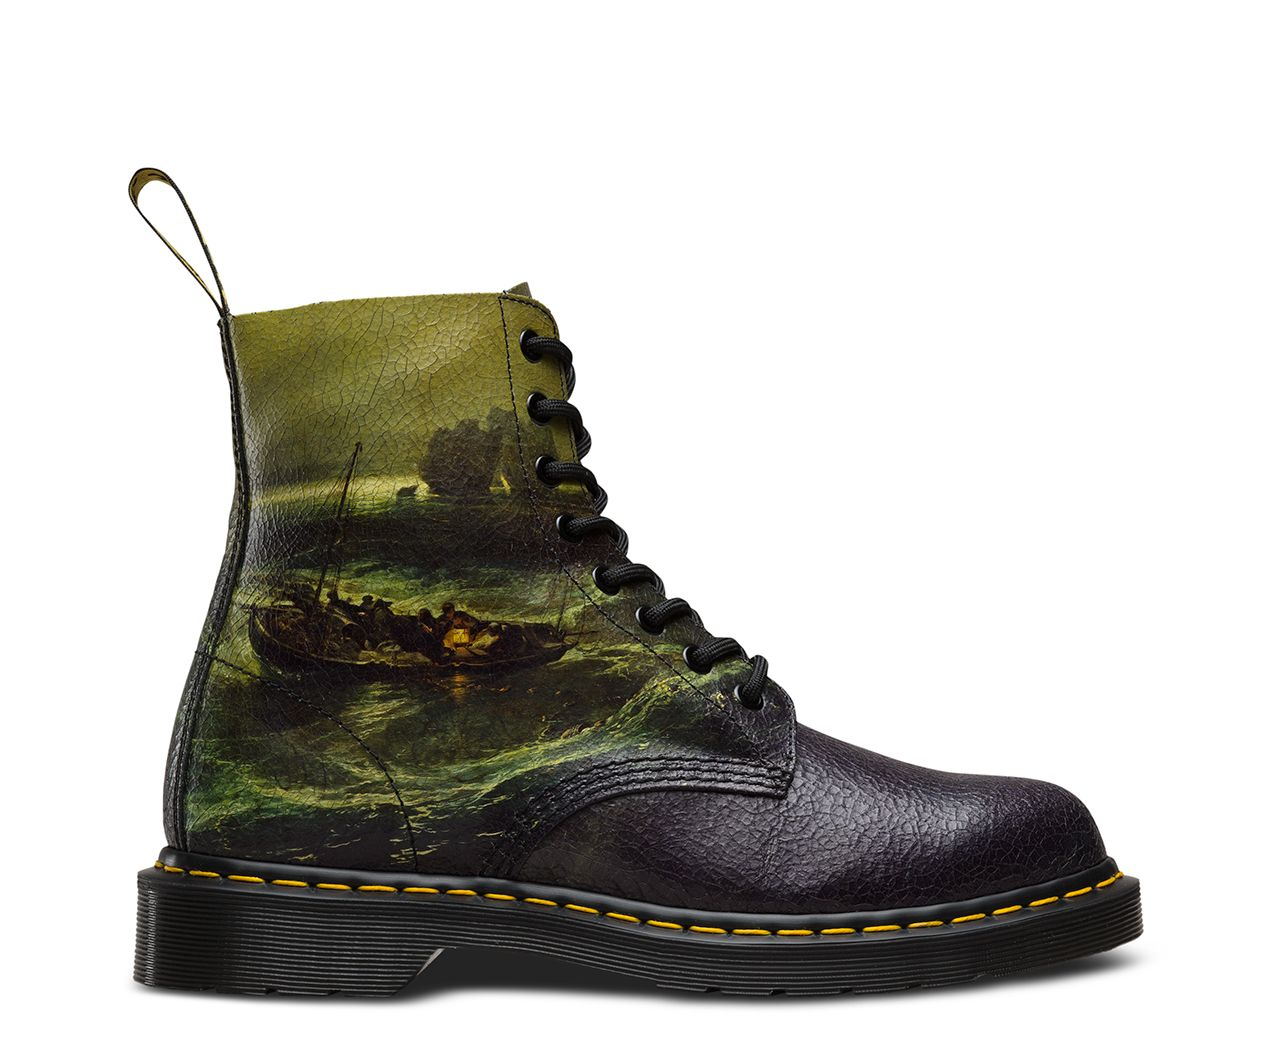 323a89bd4890f The 1460 Pascal is an 8-eye silhouette based on the original Dr. Martens  boot. The boot s iconic DNA looks like this  8-eyes